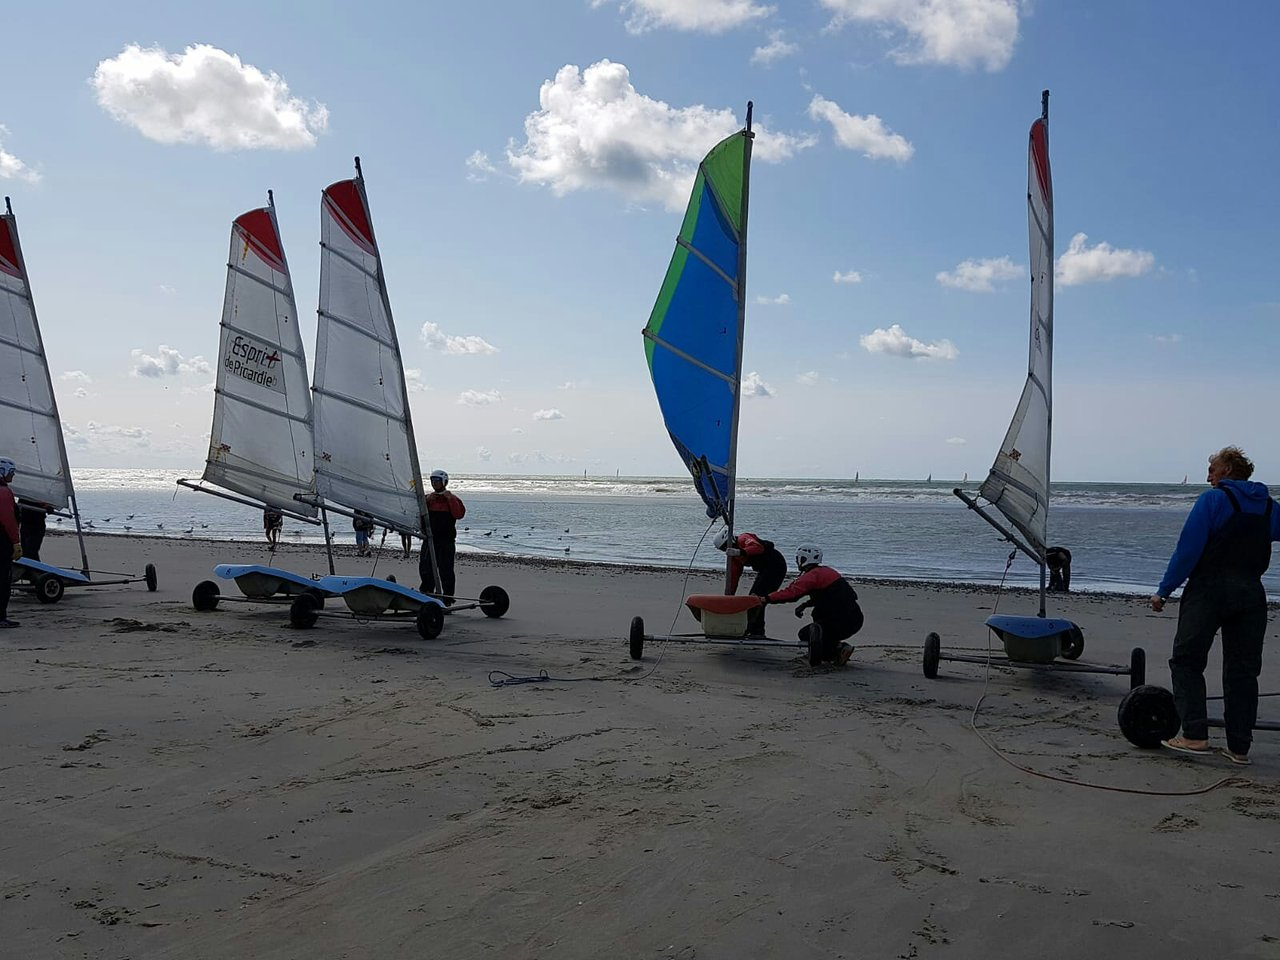 Club De Char A Voile Eolia Fort Mahon Plage 2020 All You Need To Know Before You Go With Photos Tripadvisor